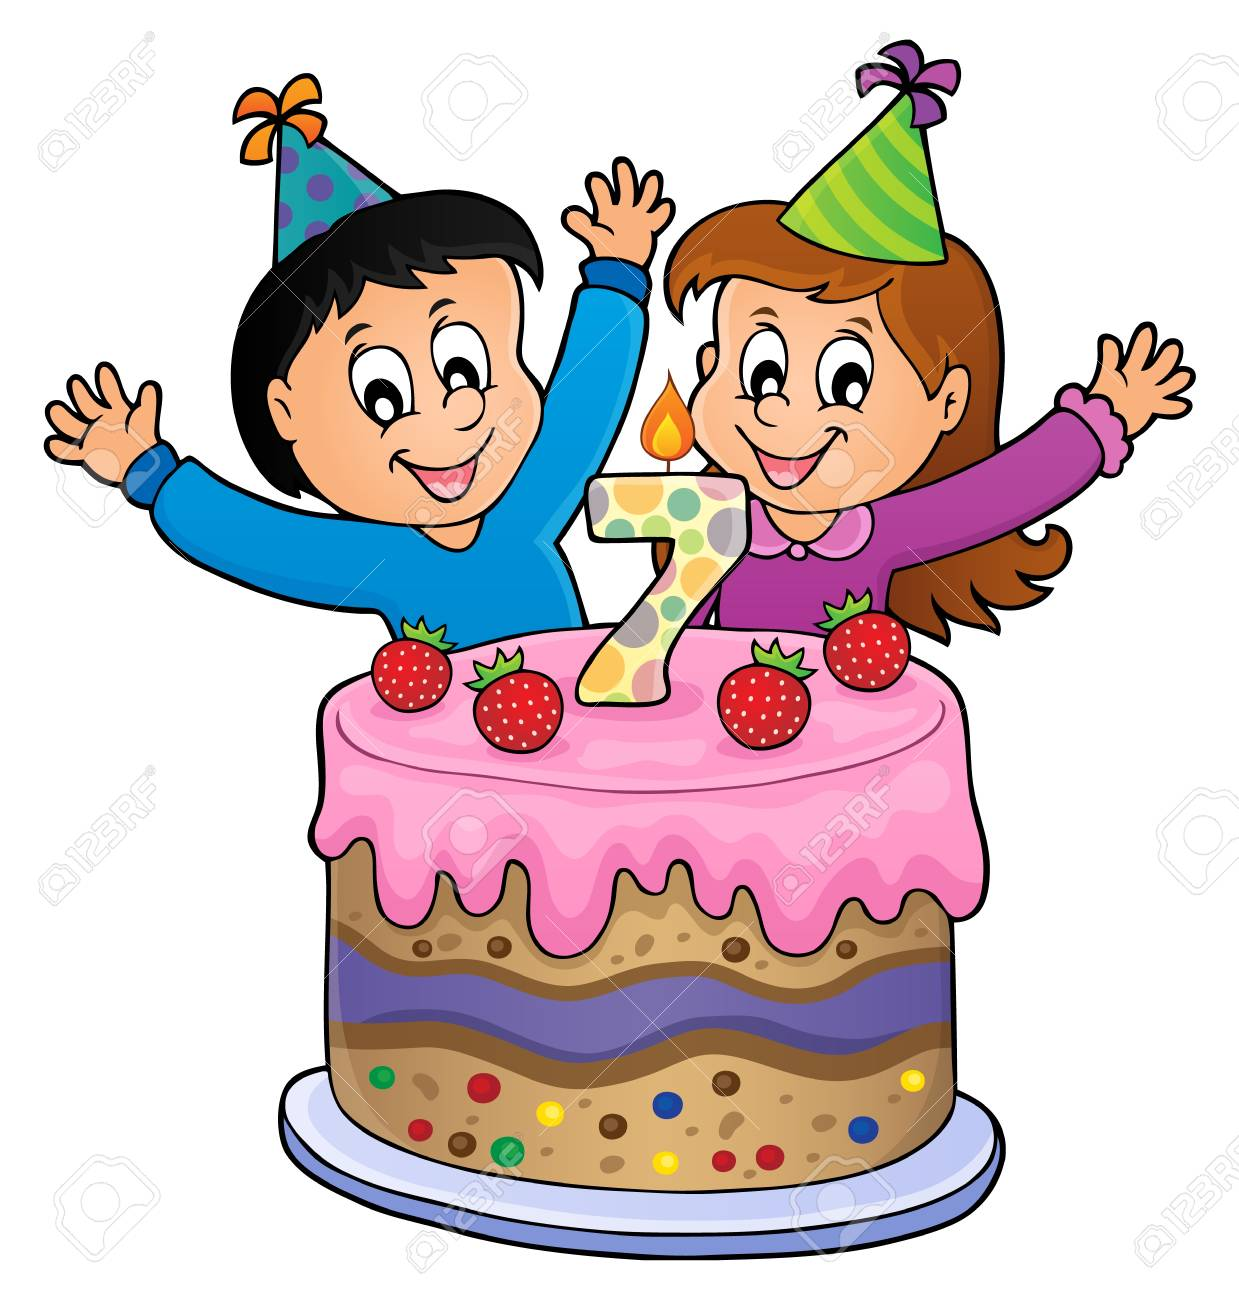 Two Kids Waving Hands In Behind A Birthday Cake With Number 7 Vector Illustration